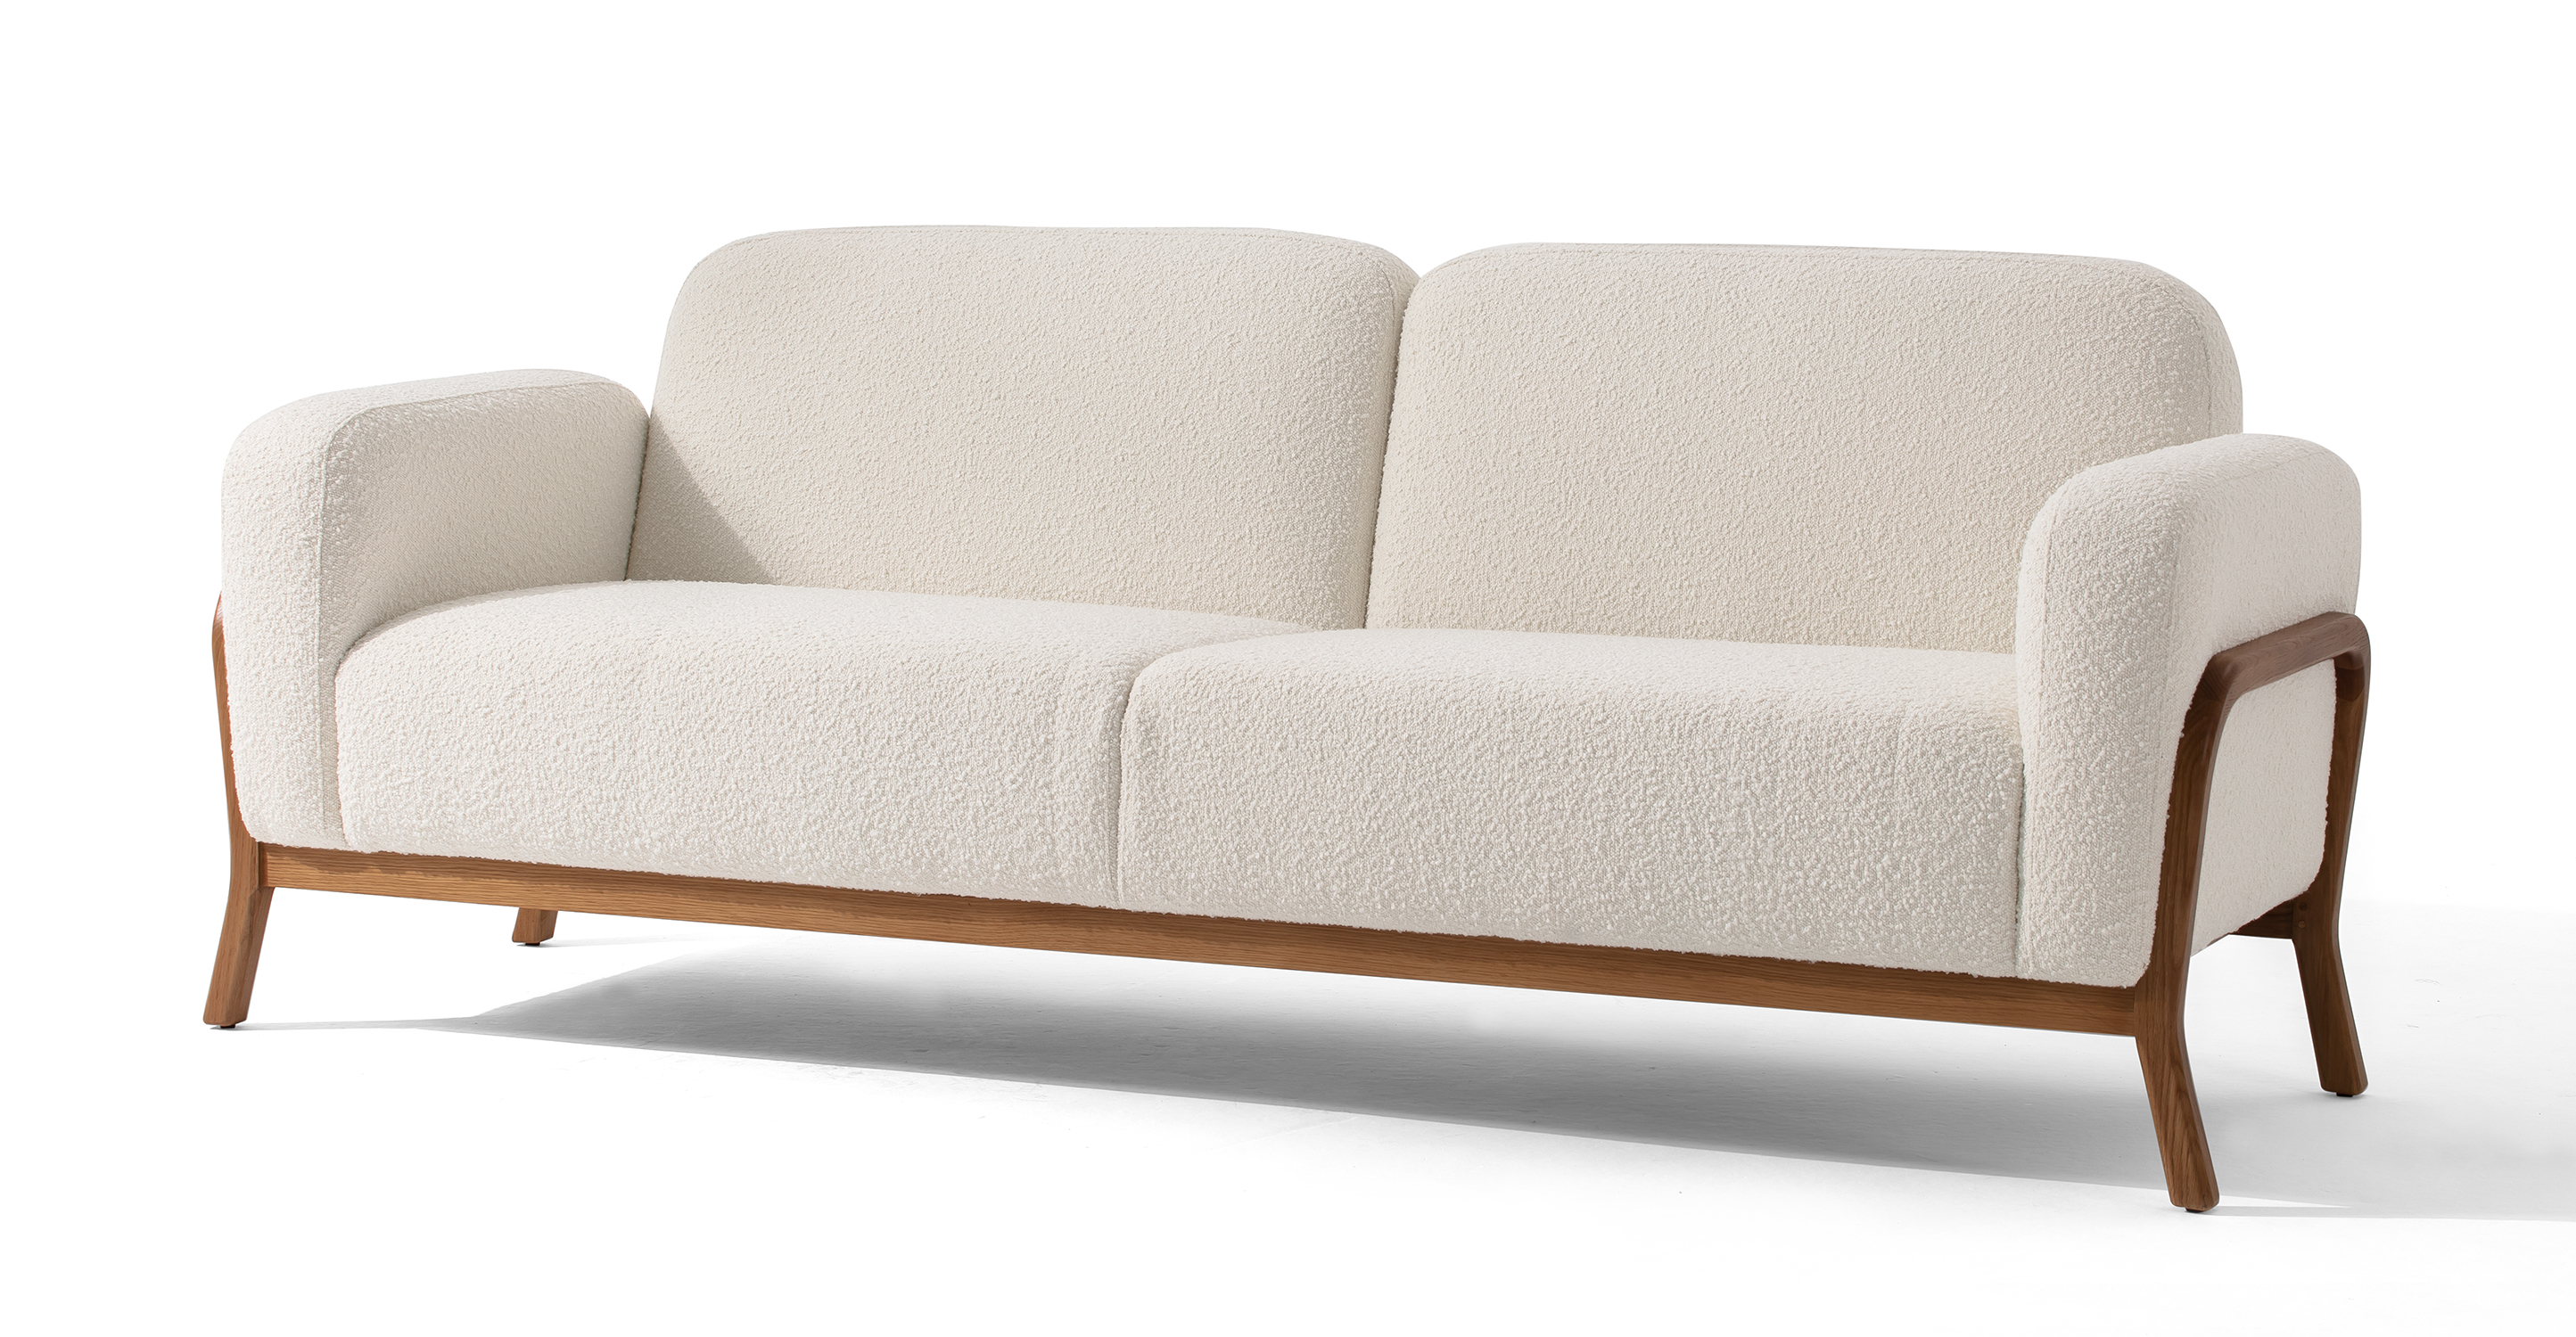 "Cabbie 85"" Fabric Sofa, Blanc Boucle"